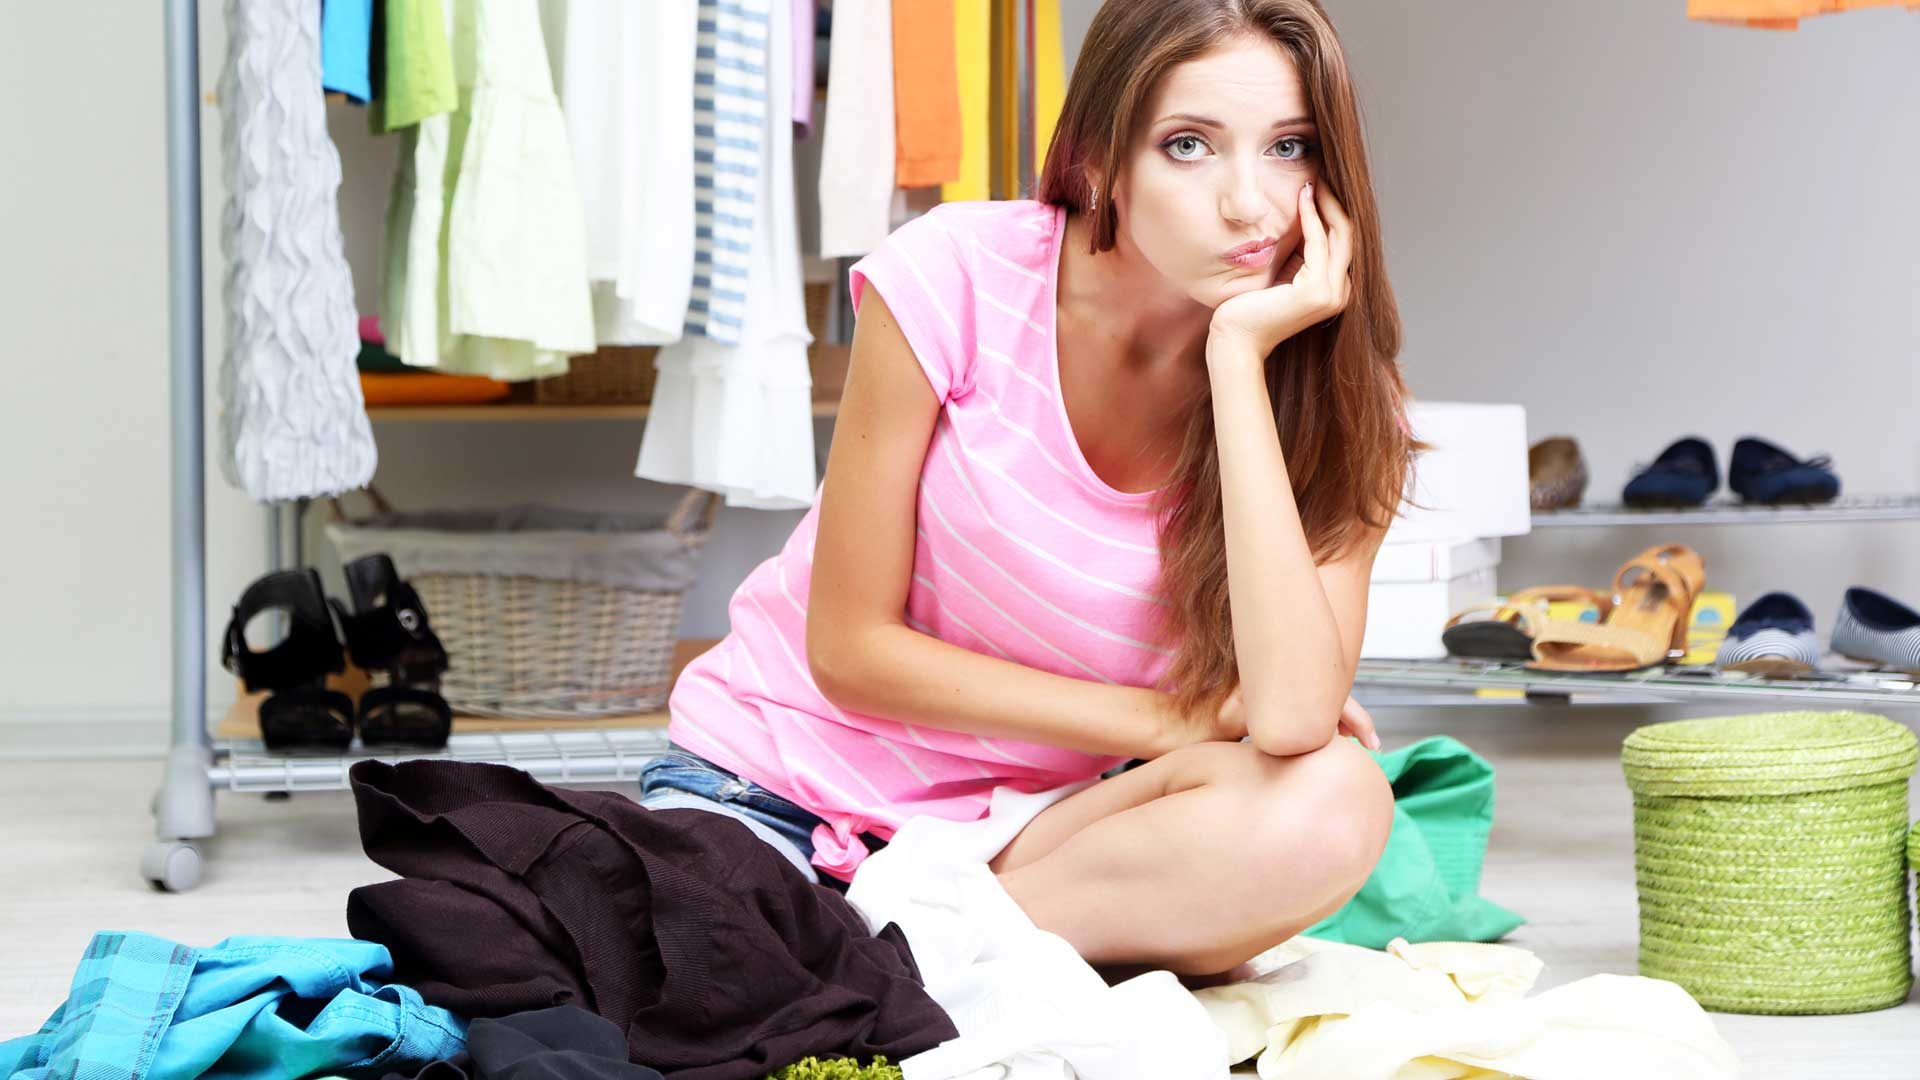 Woman Anticipating a Spring Clean